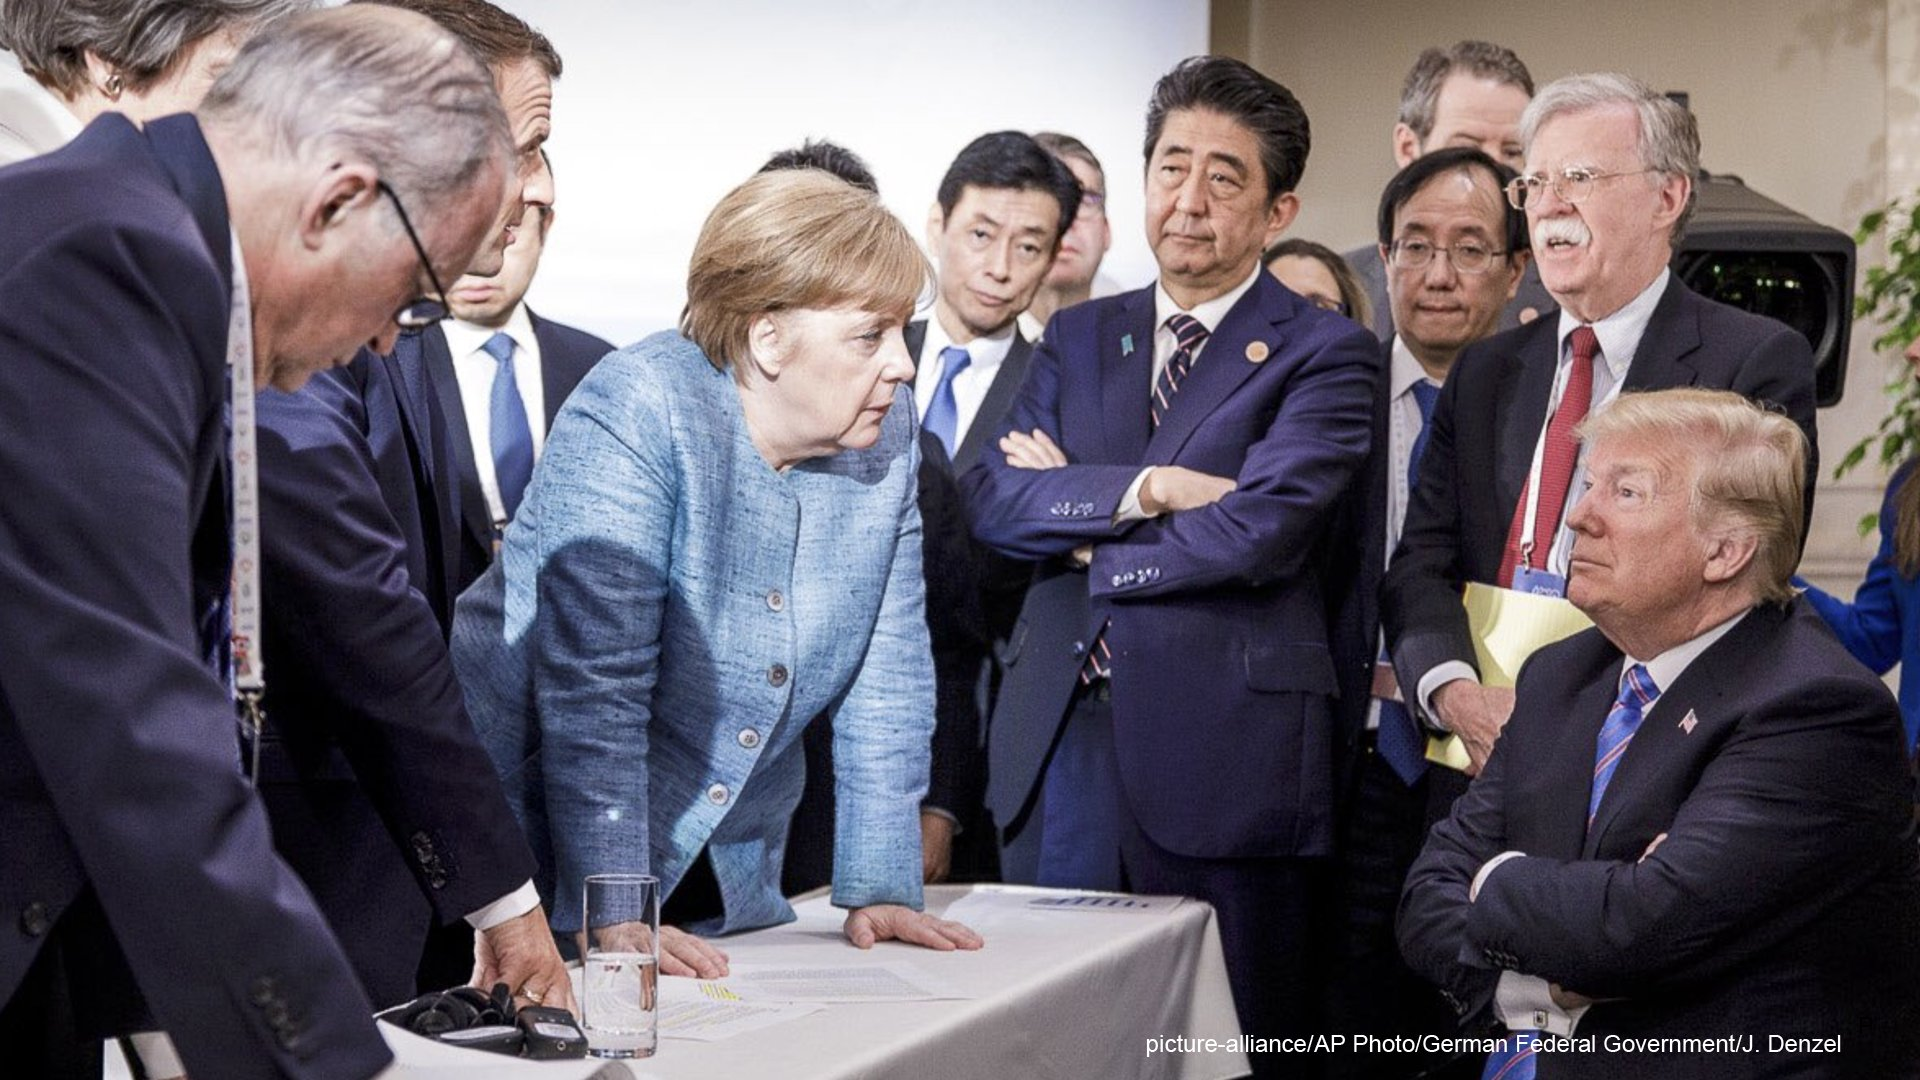 The photo that launched a thousand tweets:   #G7 https://t.co/MP1pjt1H6d